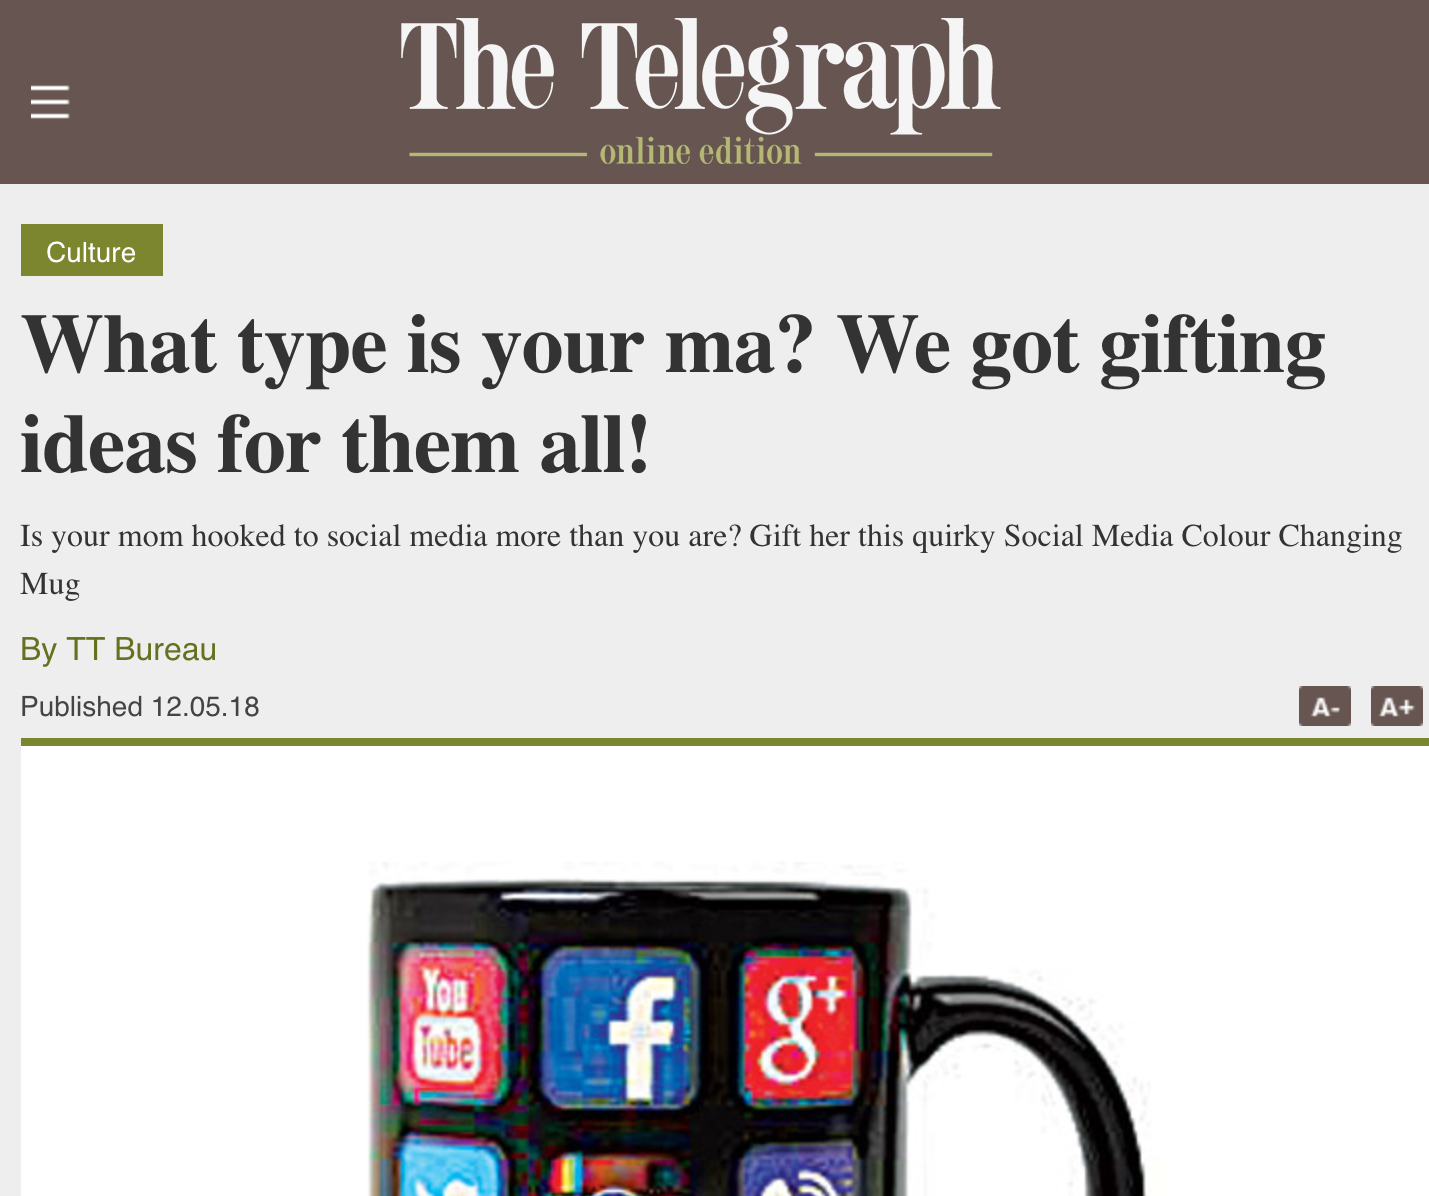 The Telegraph | What type is your ma? We got gifting ideas for them all!